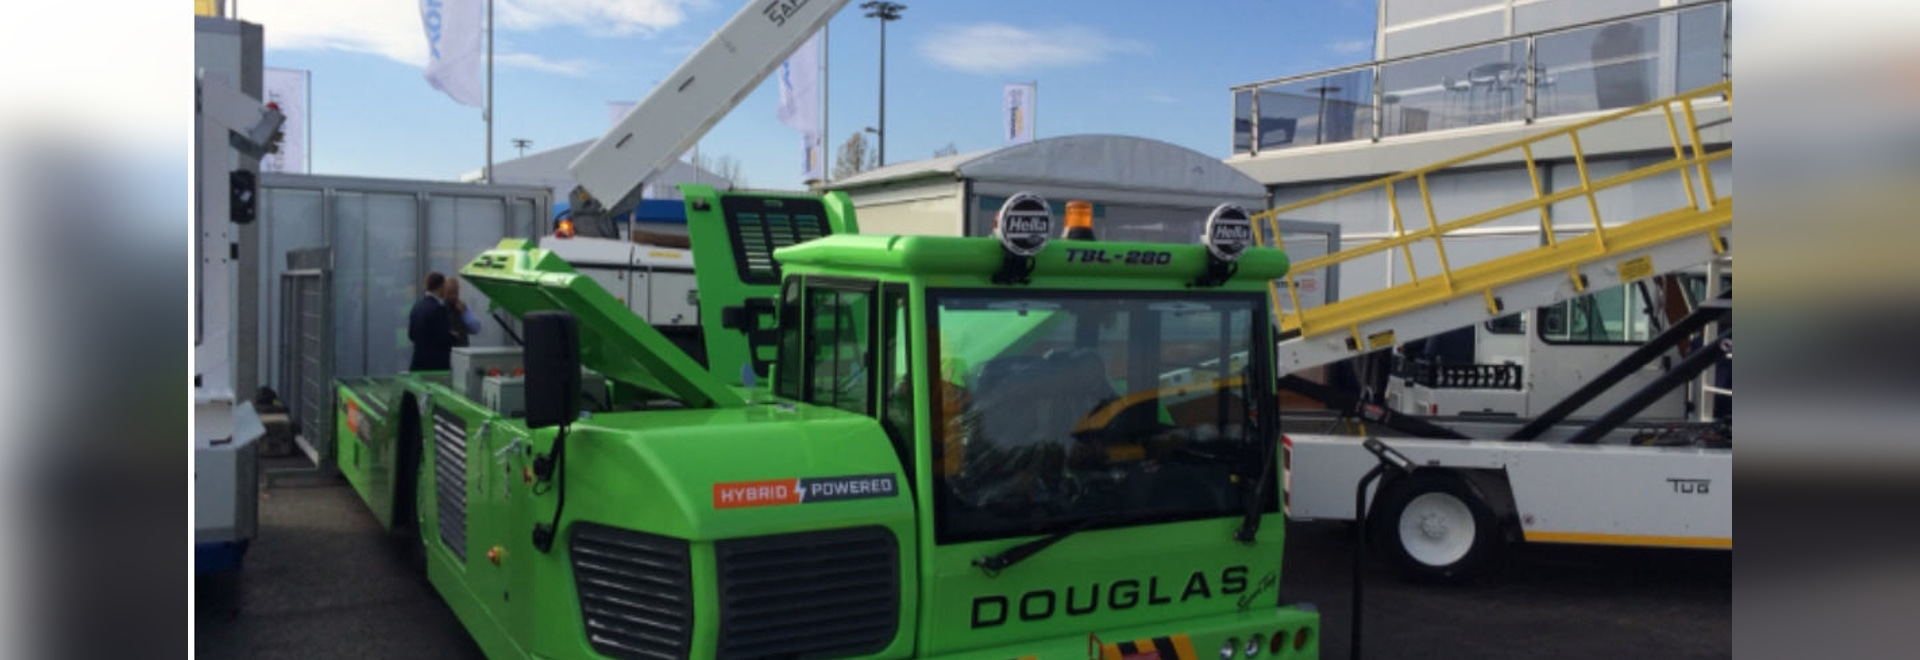 New hybrid aircraft push-back tractor on show at Inter Airport Europe Exhibition